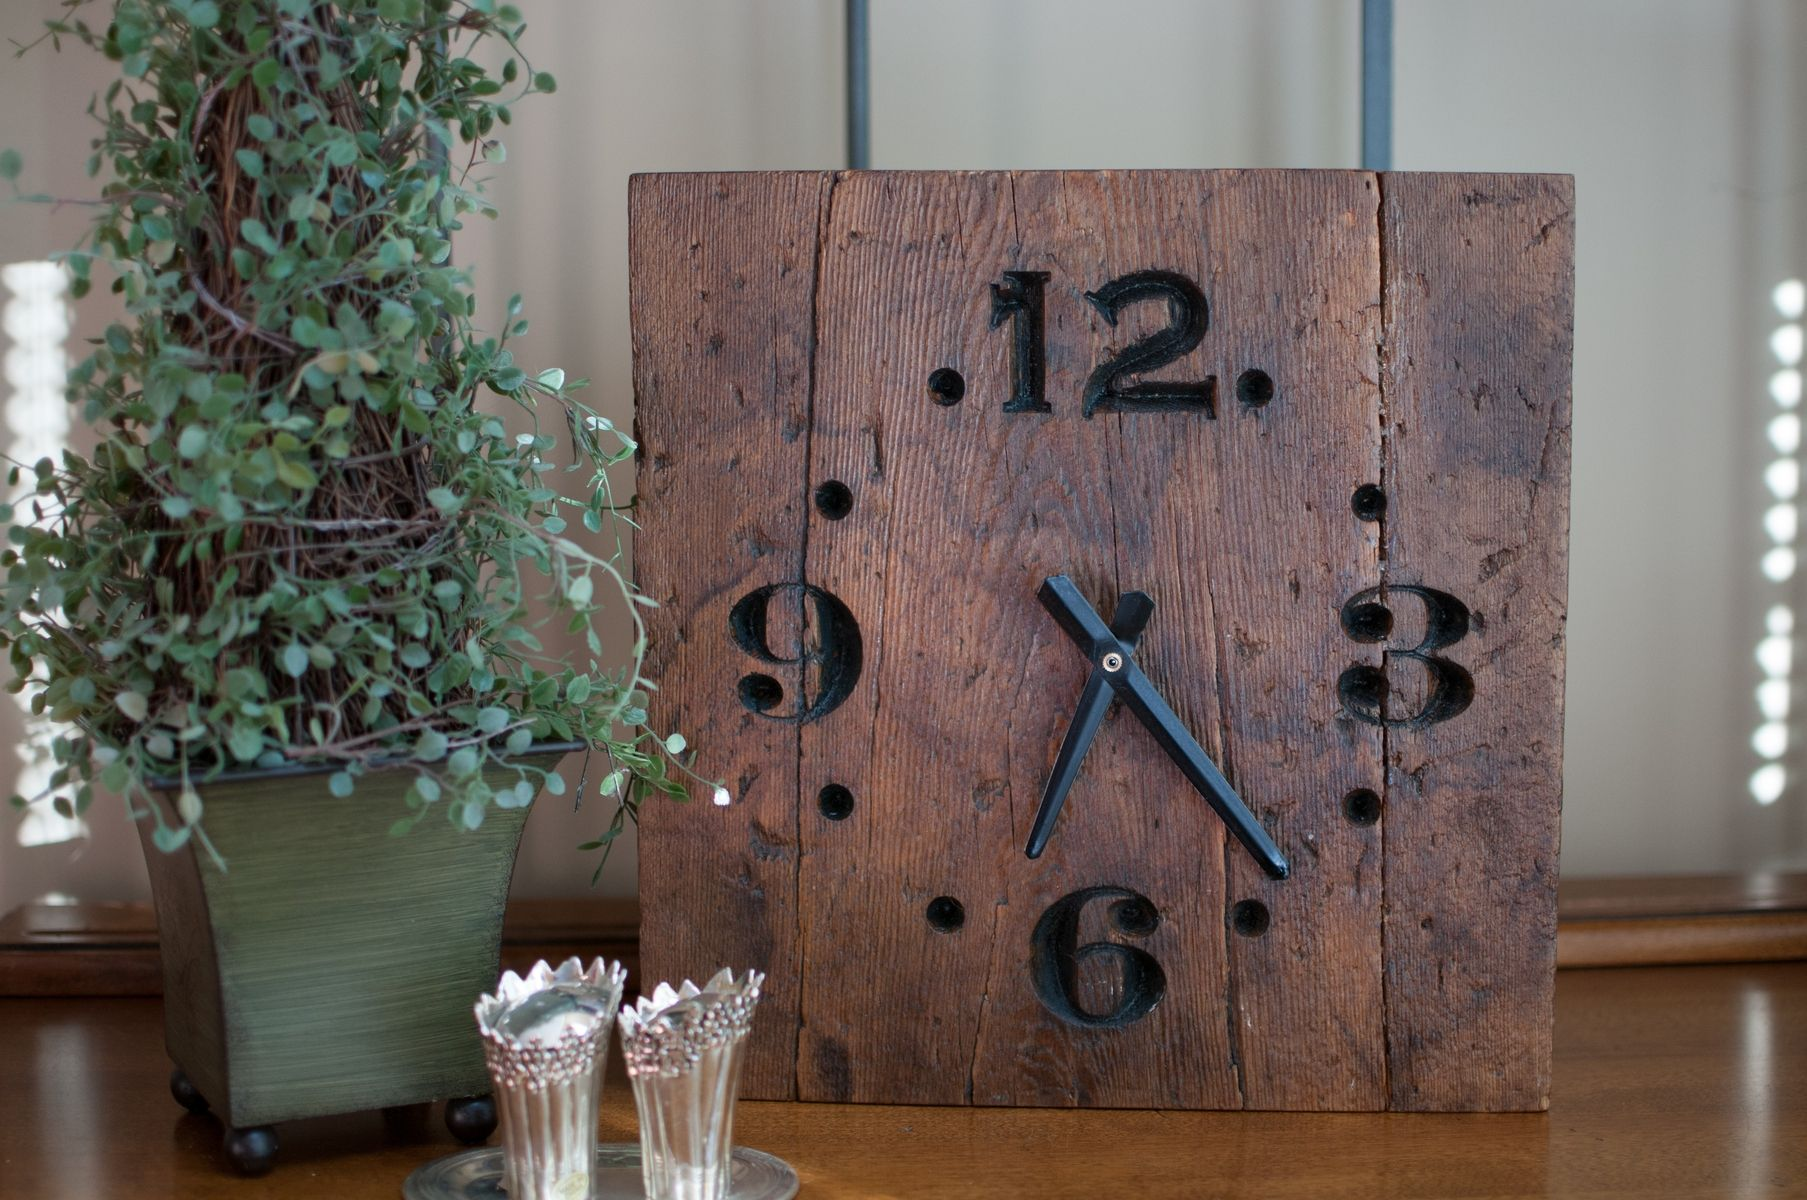 rustic kitchen clock window valance ideas hand made reclaimed wood by the green gift idea custom